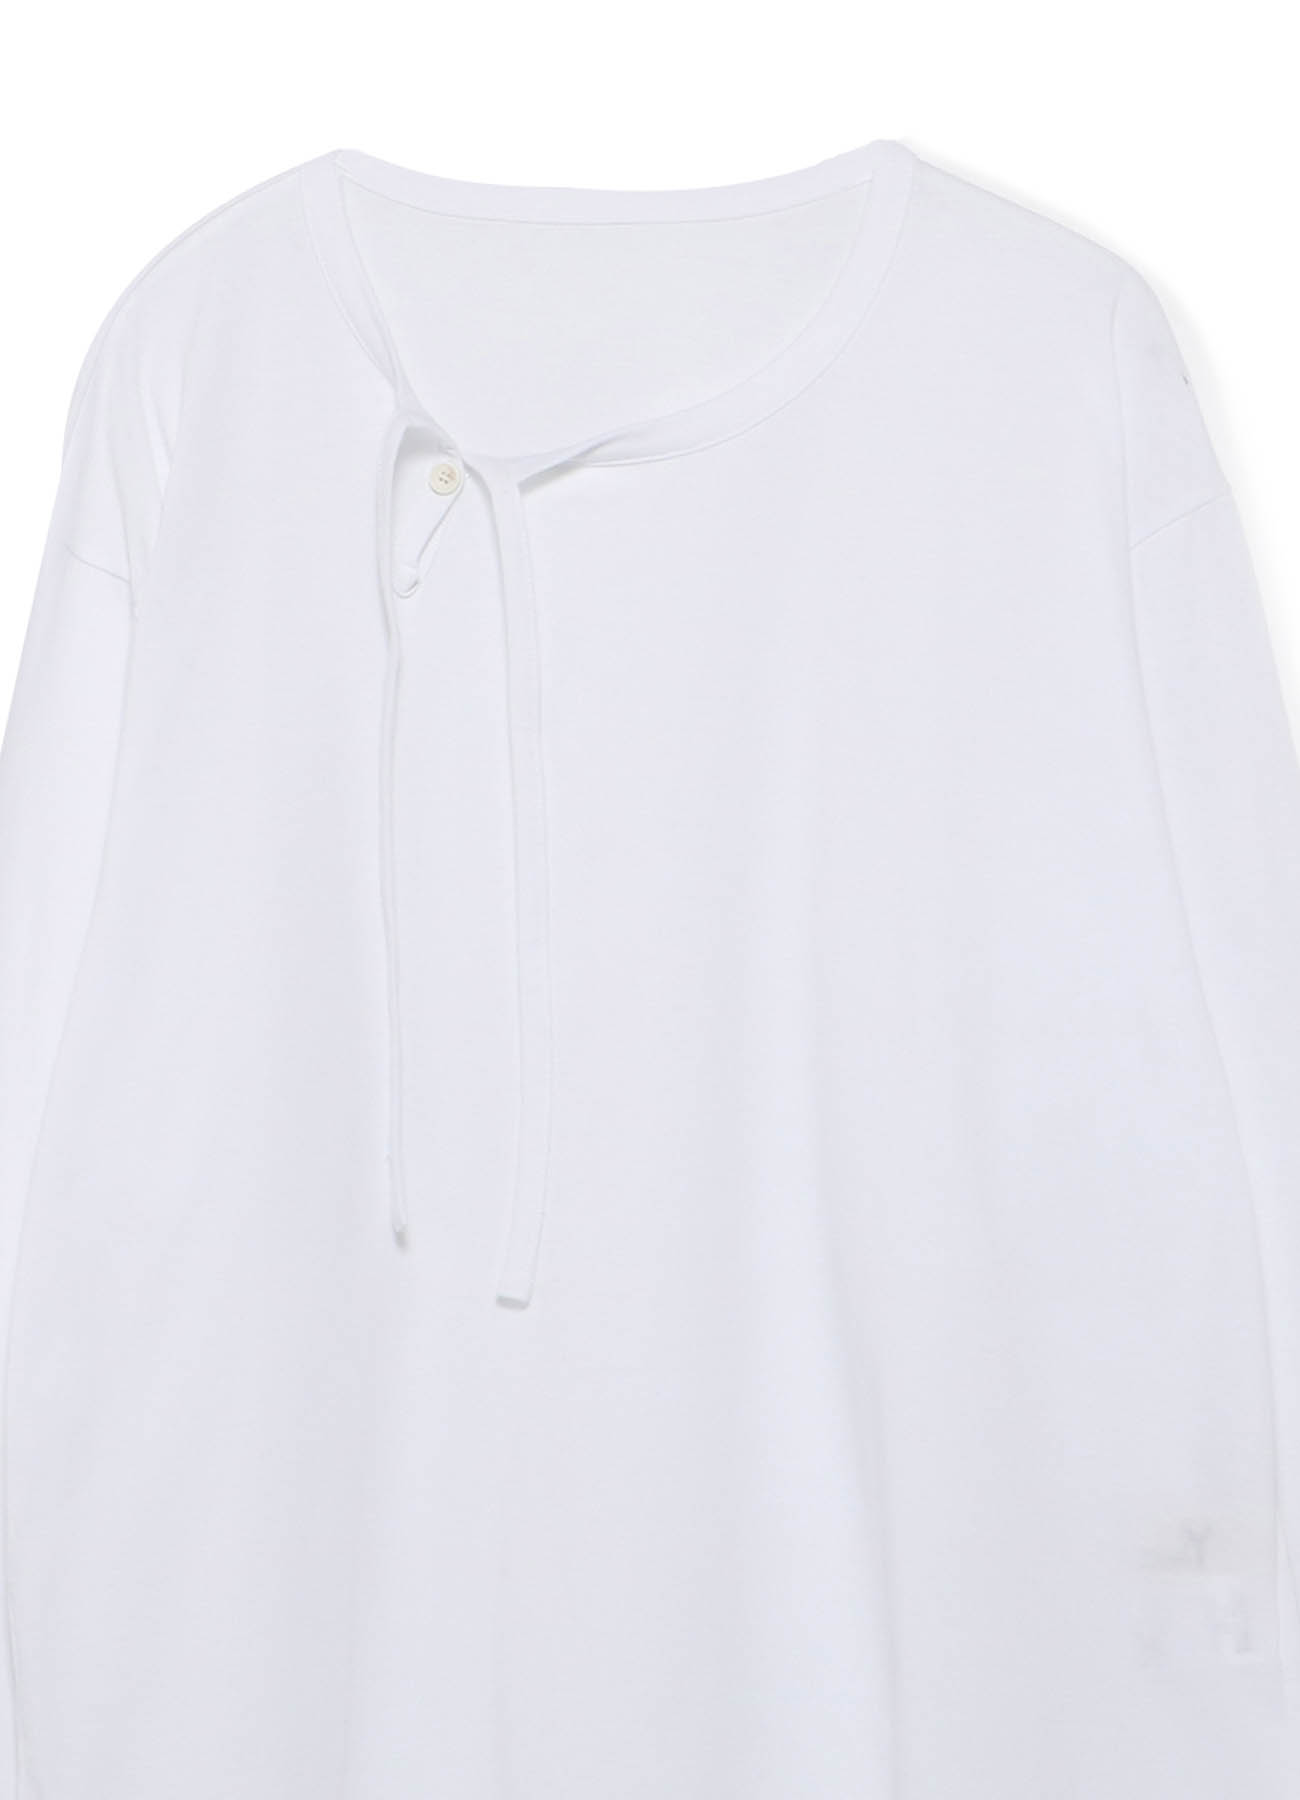 Cotton Jersey Piping T Long Sleeves